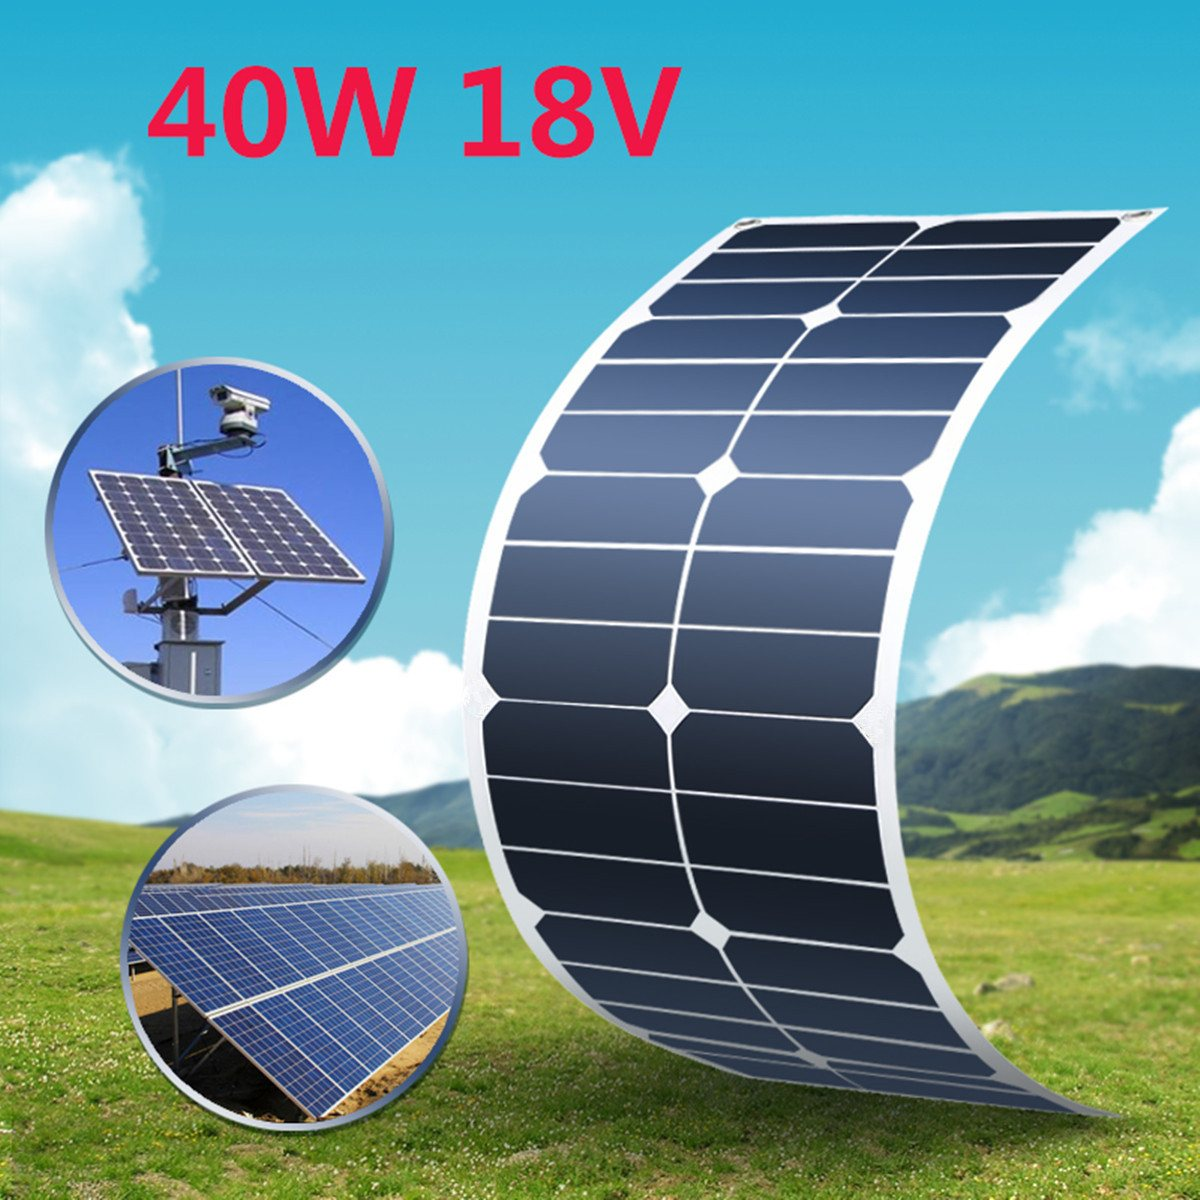 KINCO 40W/18V Semi-Flexible Solar Panel Monocrystalline Silicon Solar System Power Supply For Car Charger +MC4 Connector Cable 100w folding solar panel solar battery charger for car boat caravan golf cart